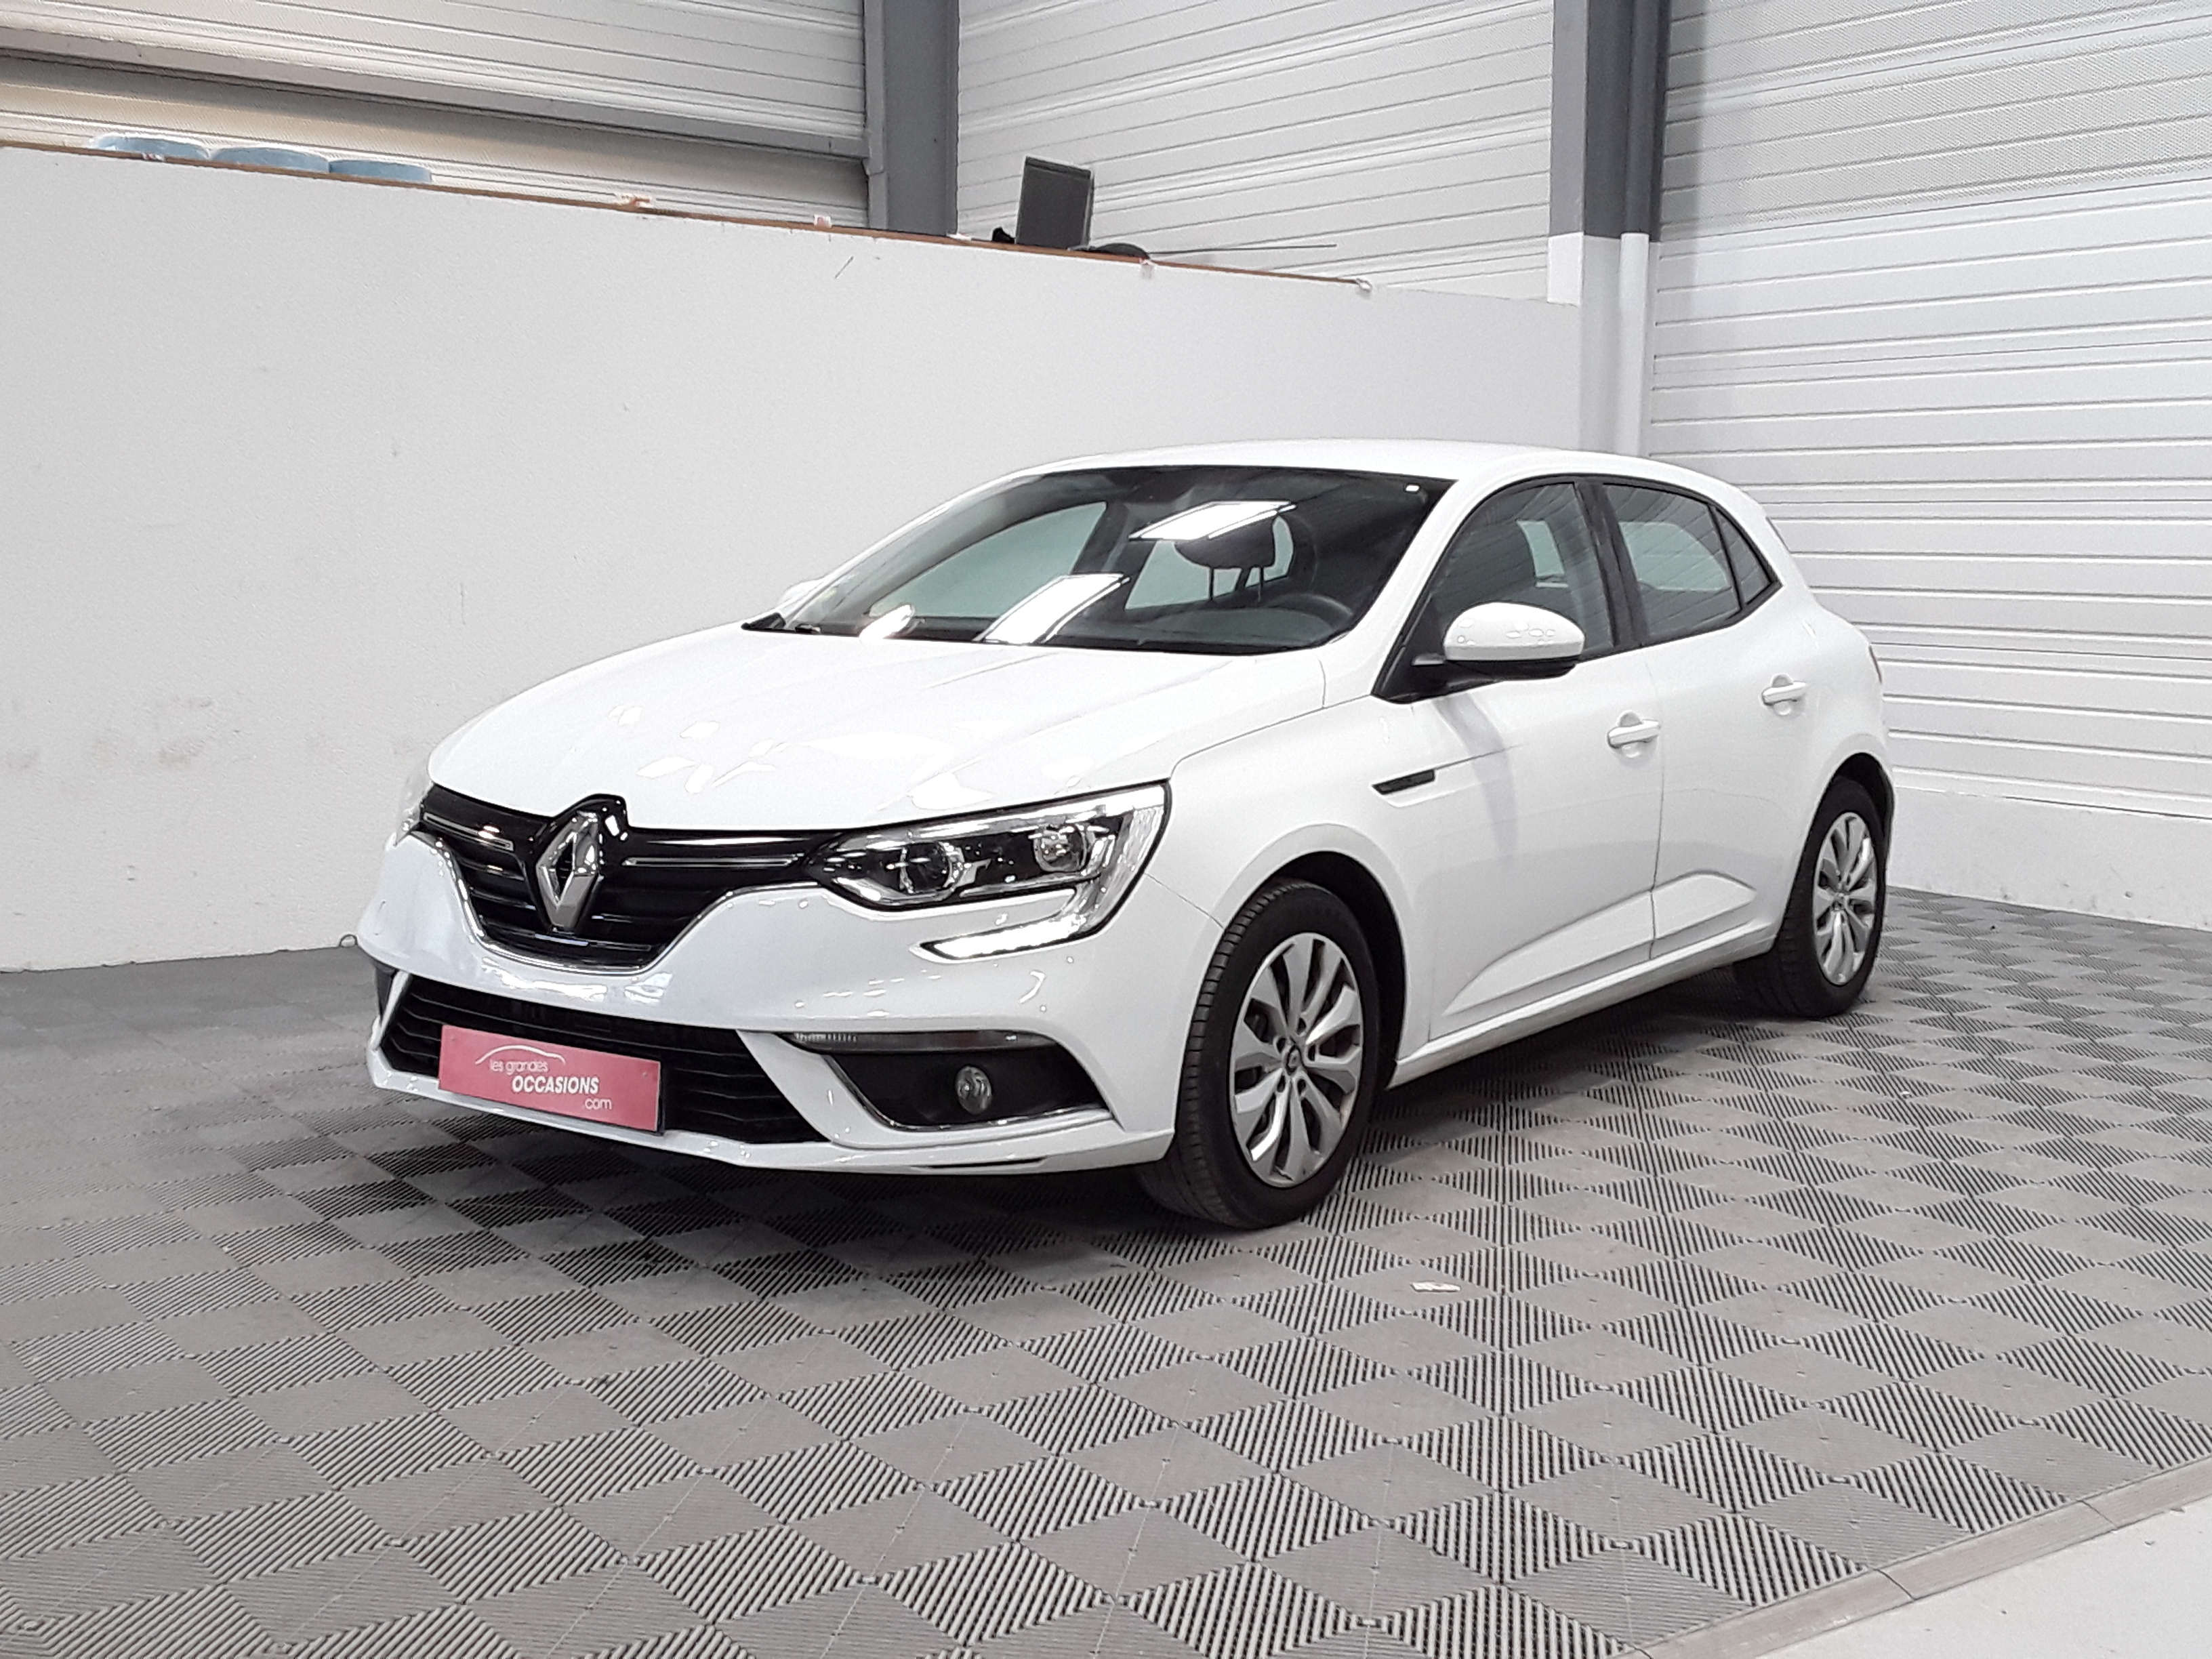 RENAULT MEGANE IV SOCIETE 1.5 DCI 90CH ENERGY AIR NAV d'occasion